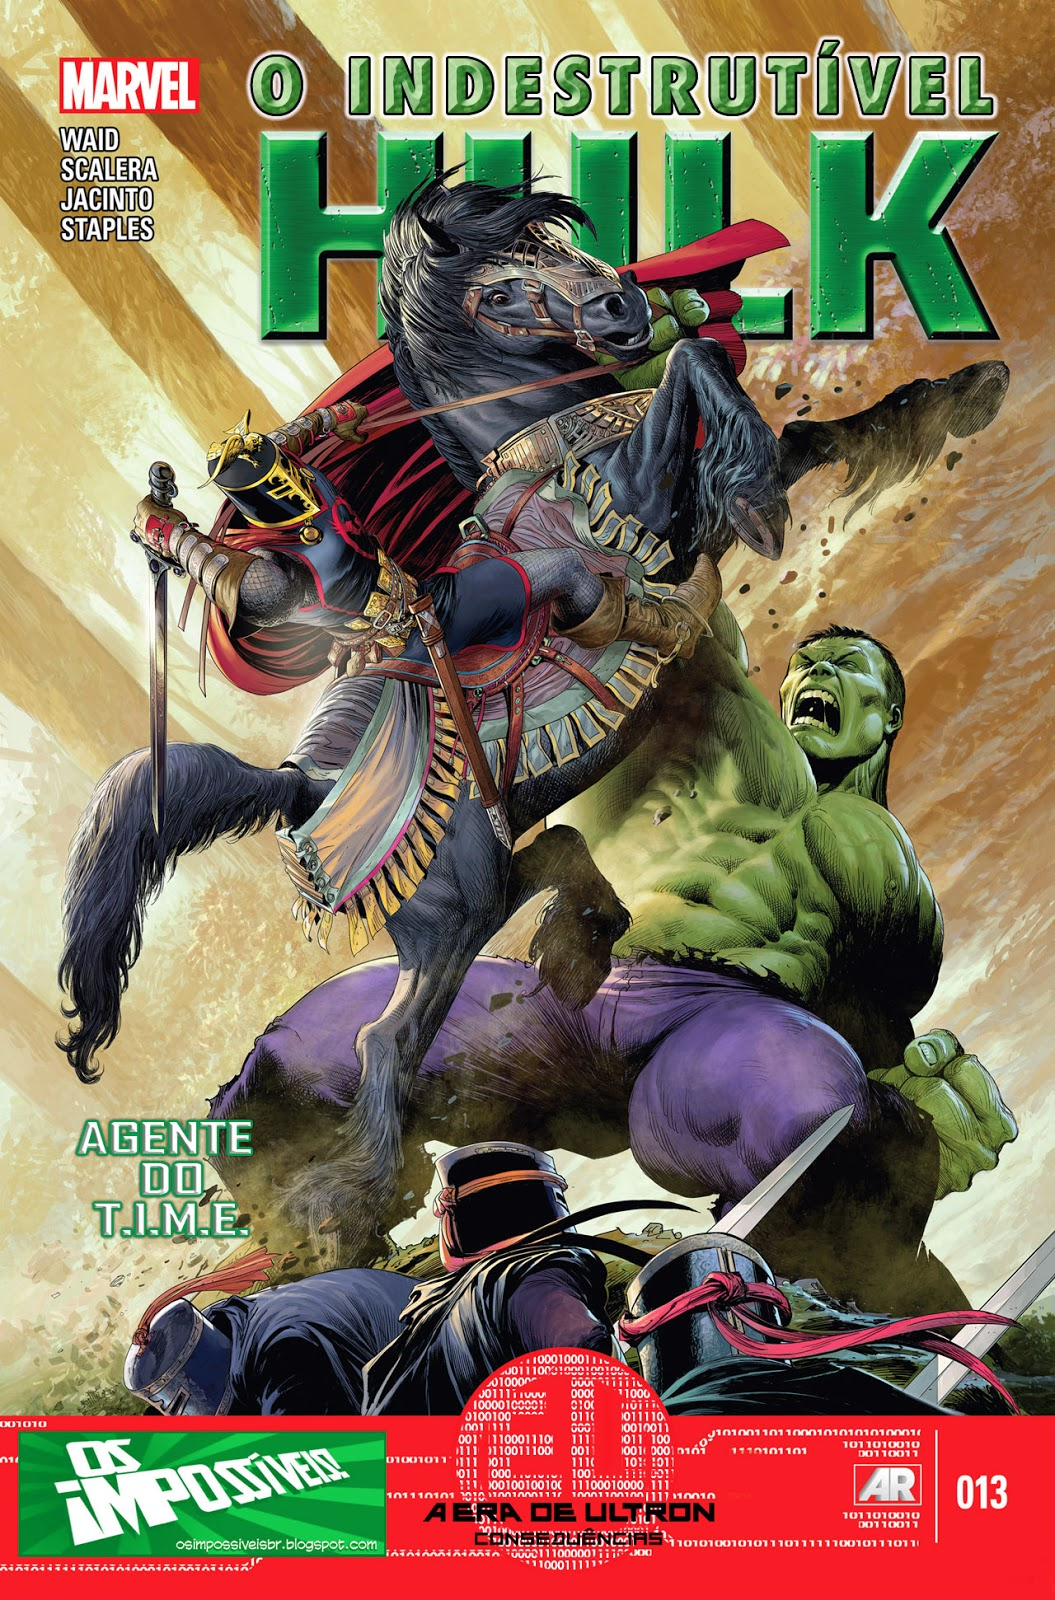 Nova Marvel! O Indestrutível Hulk - Agente do T.I.M.E #13